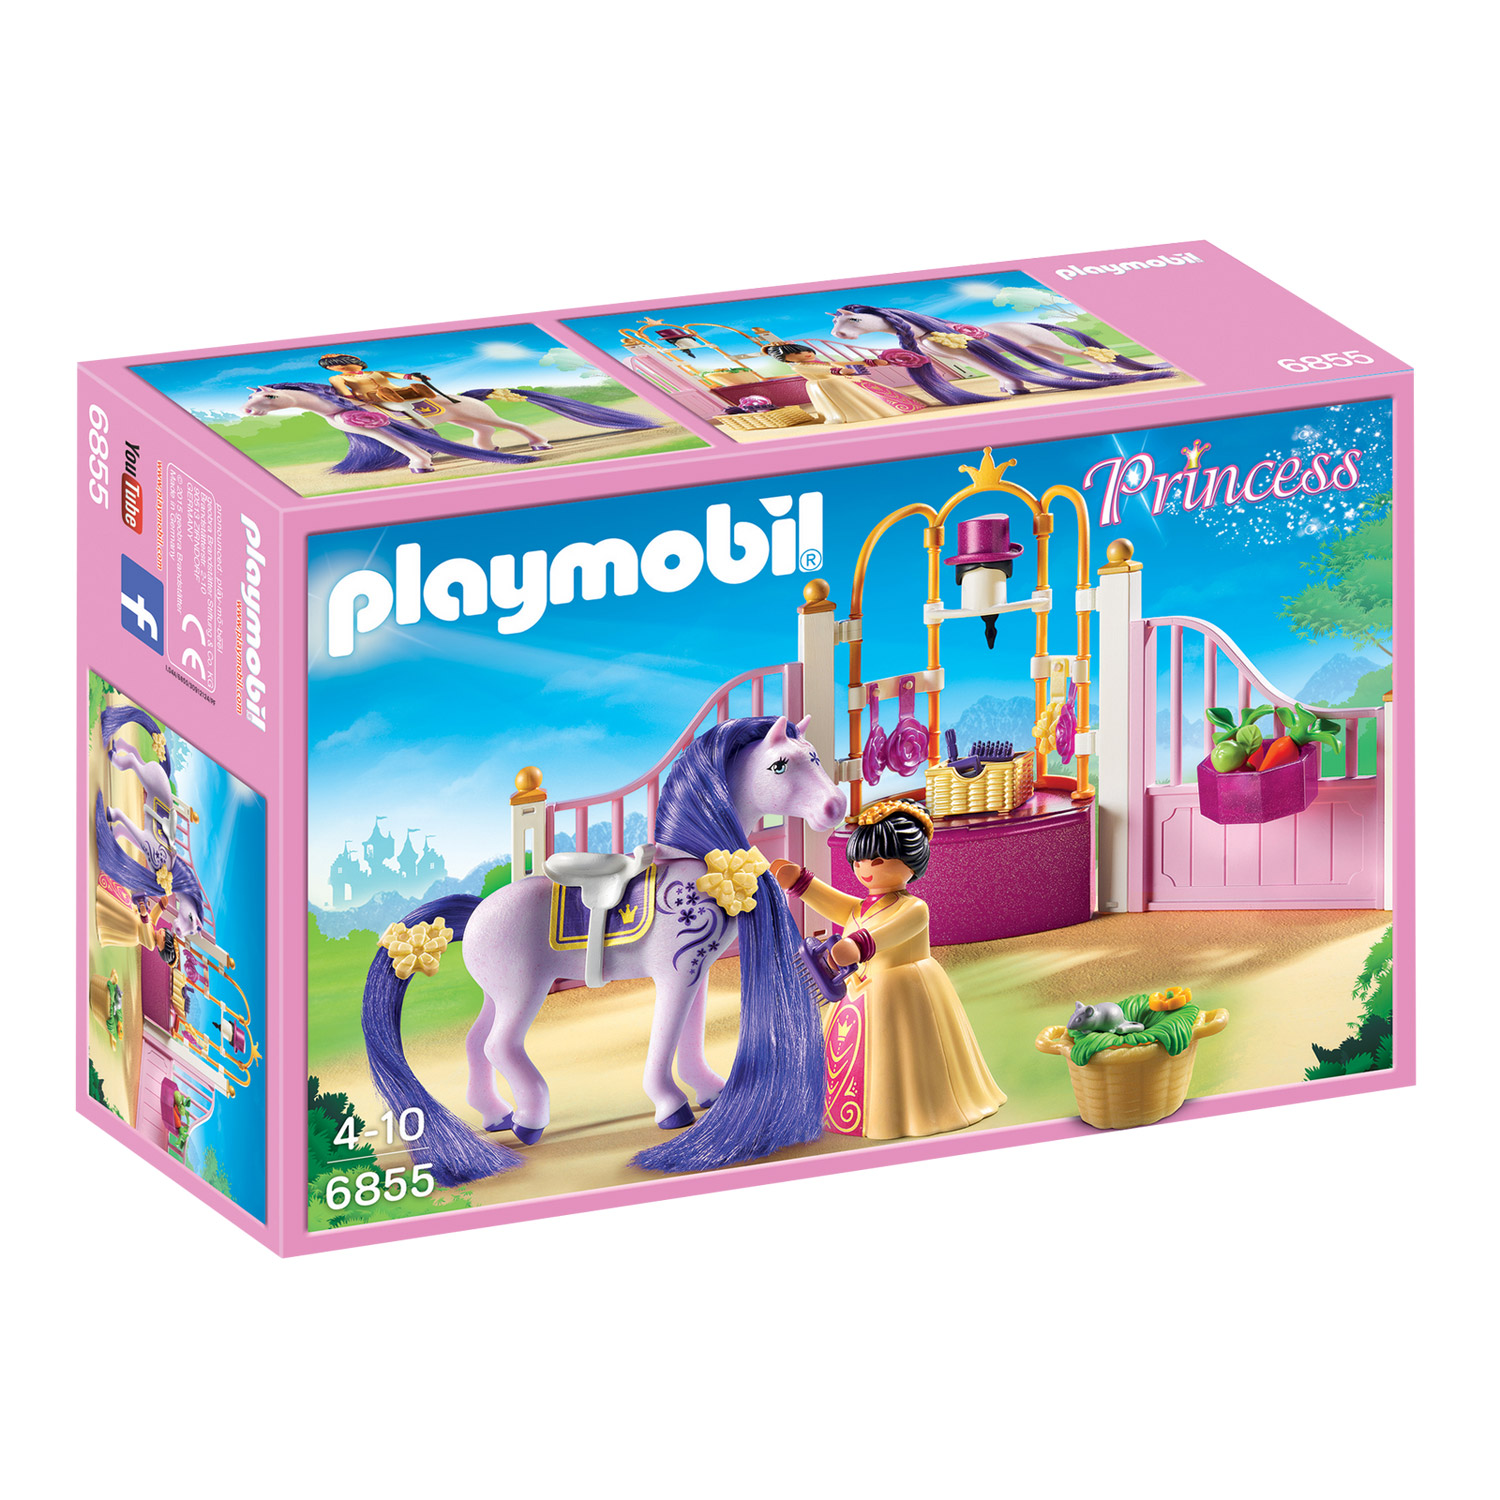 Grand Playmobil 6855 Princess : Ecurie Avec Cheval à Coiffer Et Princesse    Playmobil 6855